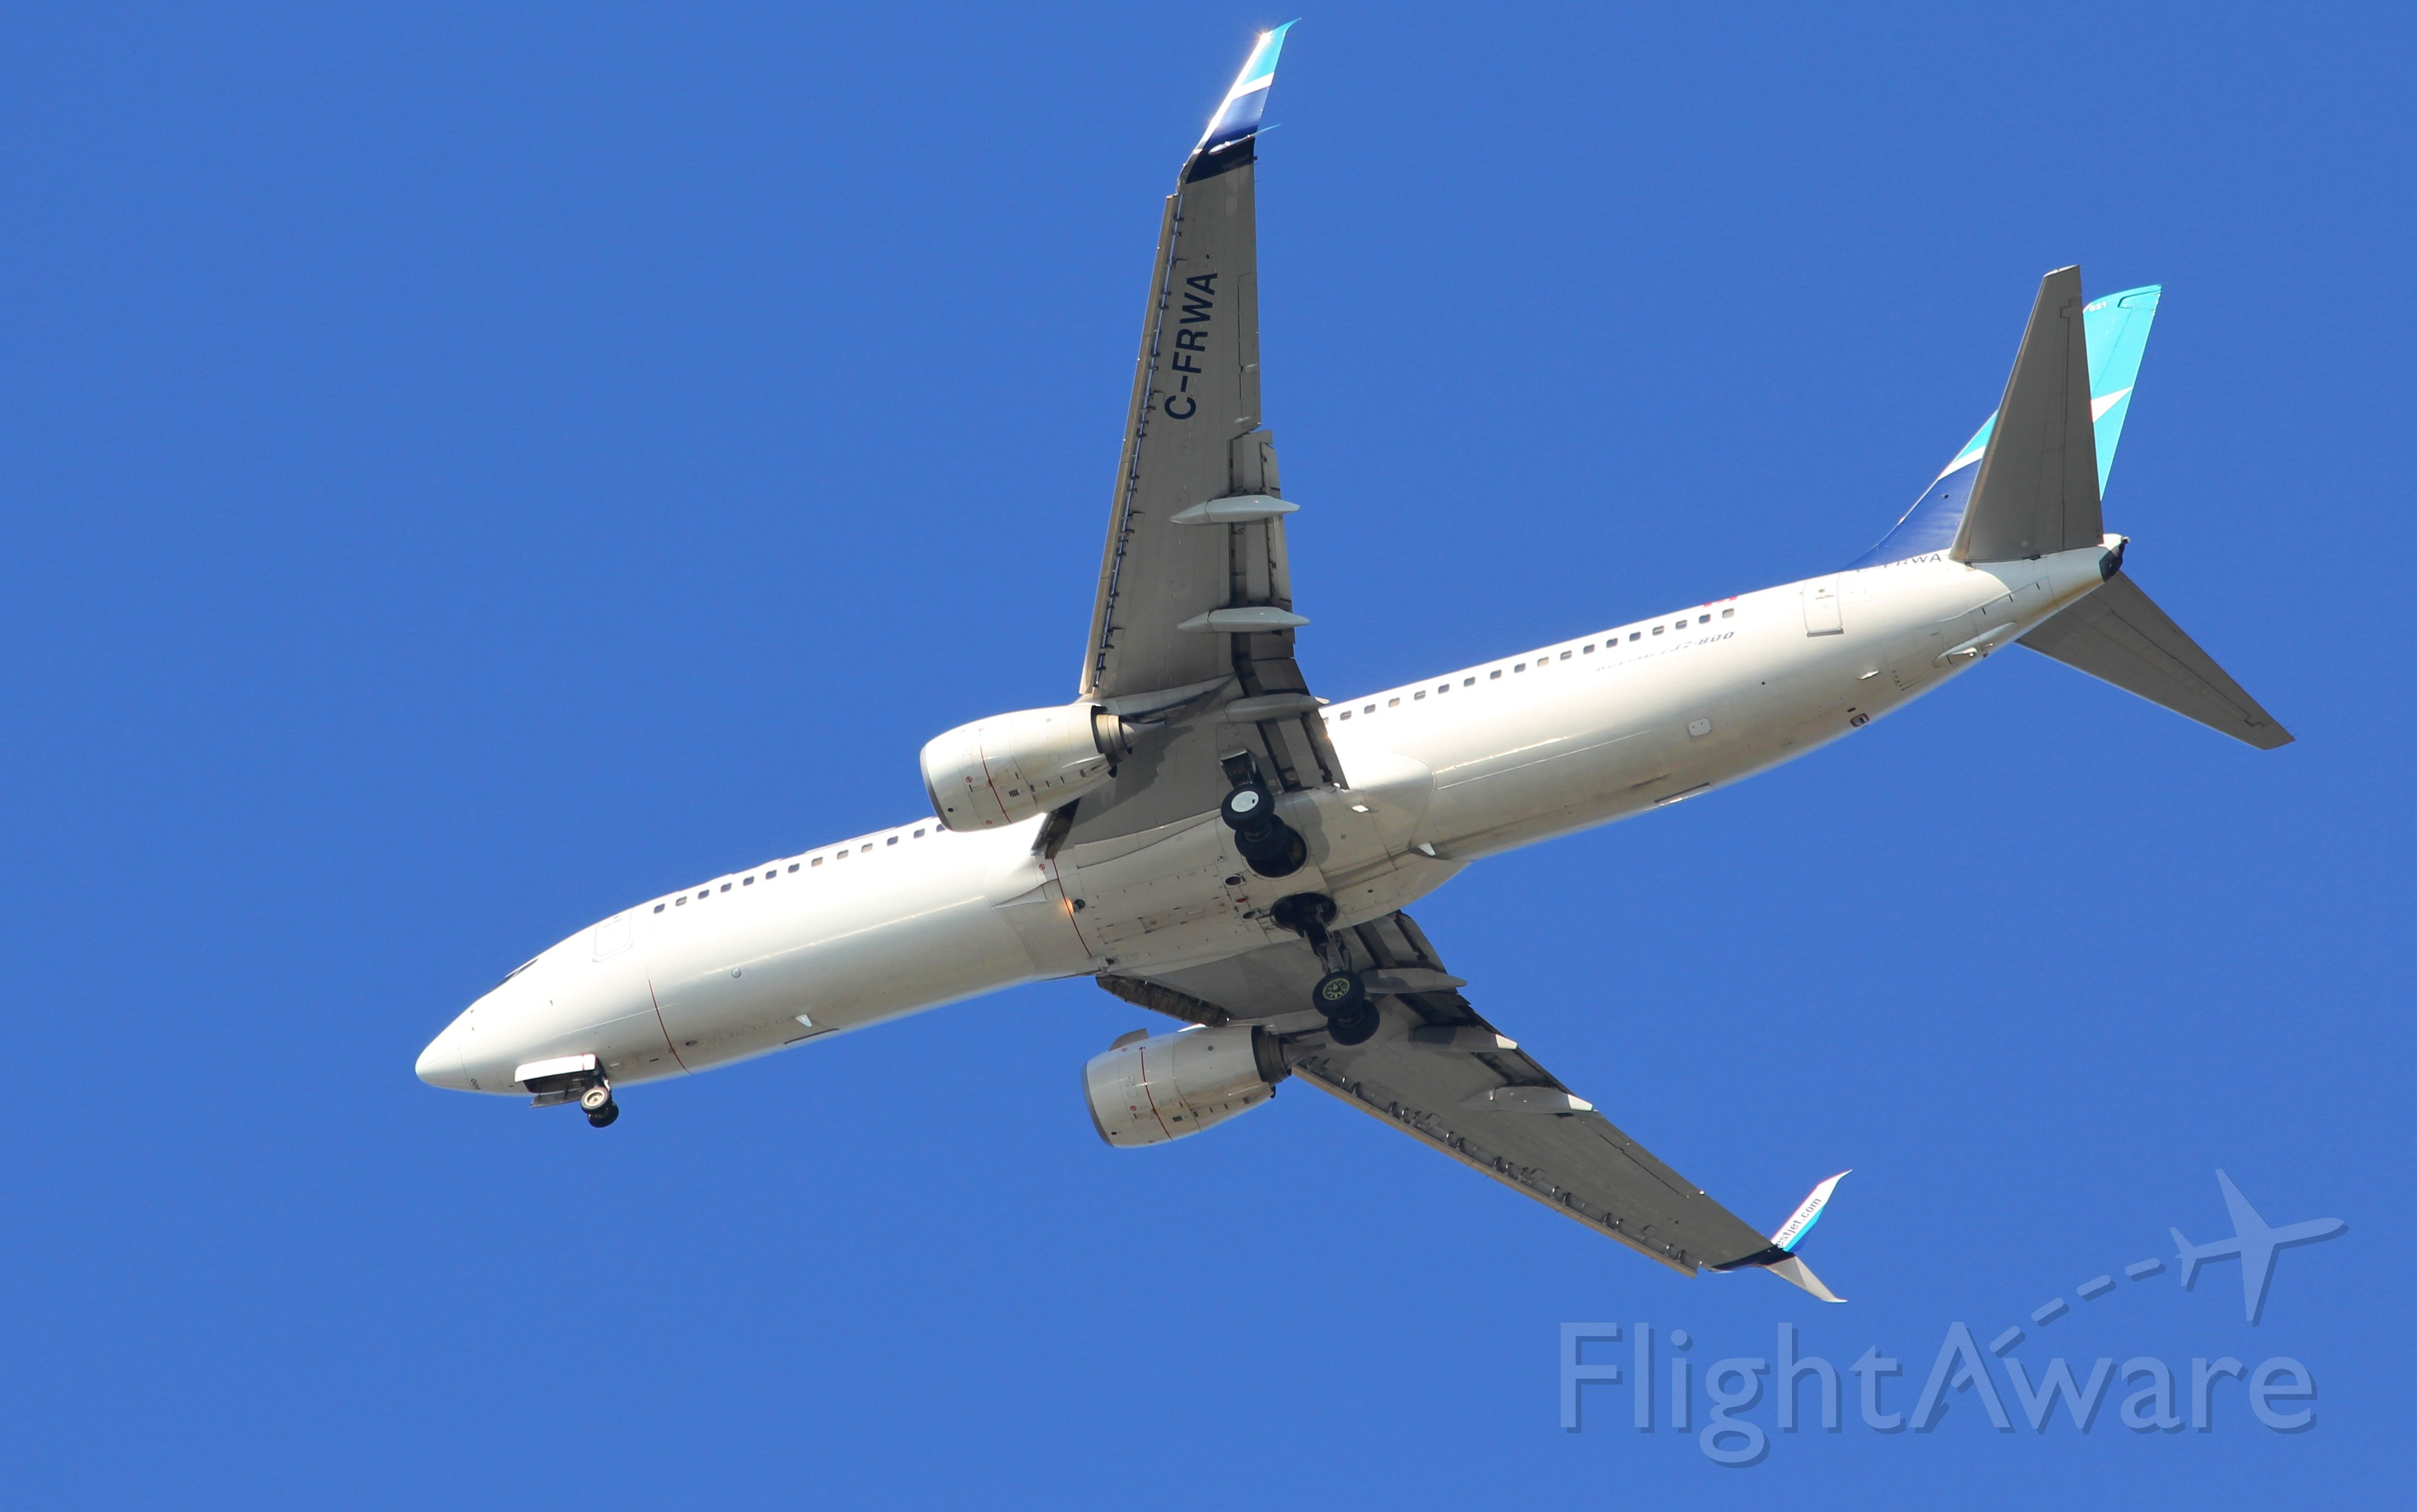 Boeing 737-800 (C-FRWA) - Nice early morning shot from my front yard.